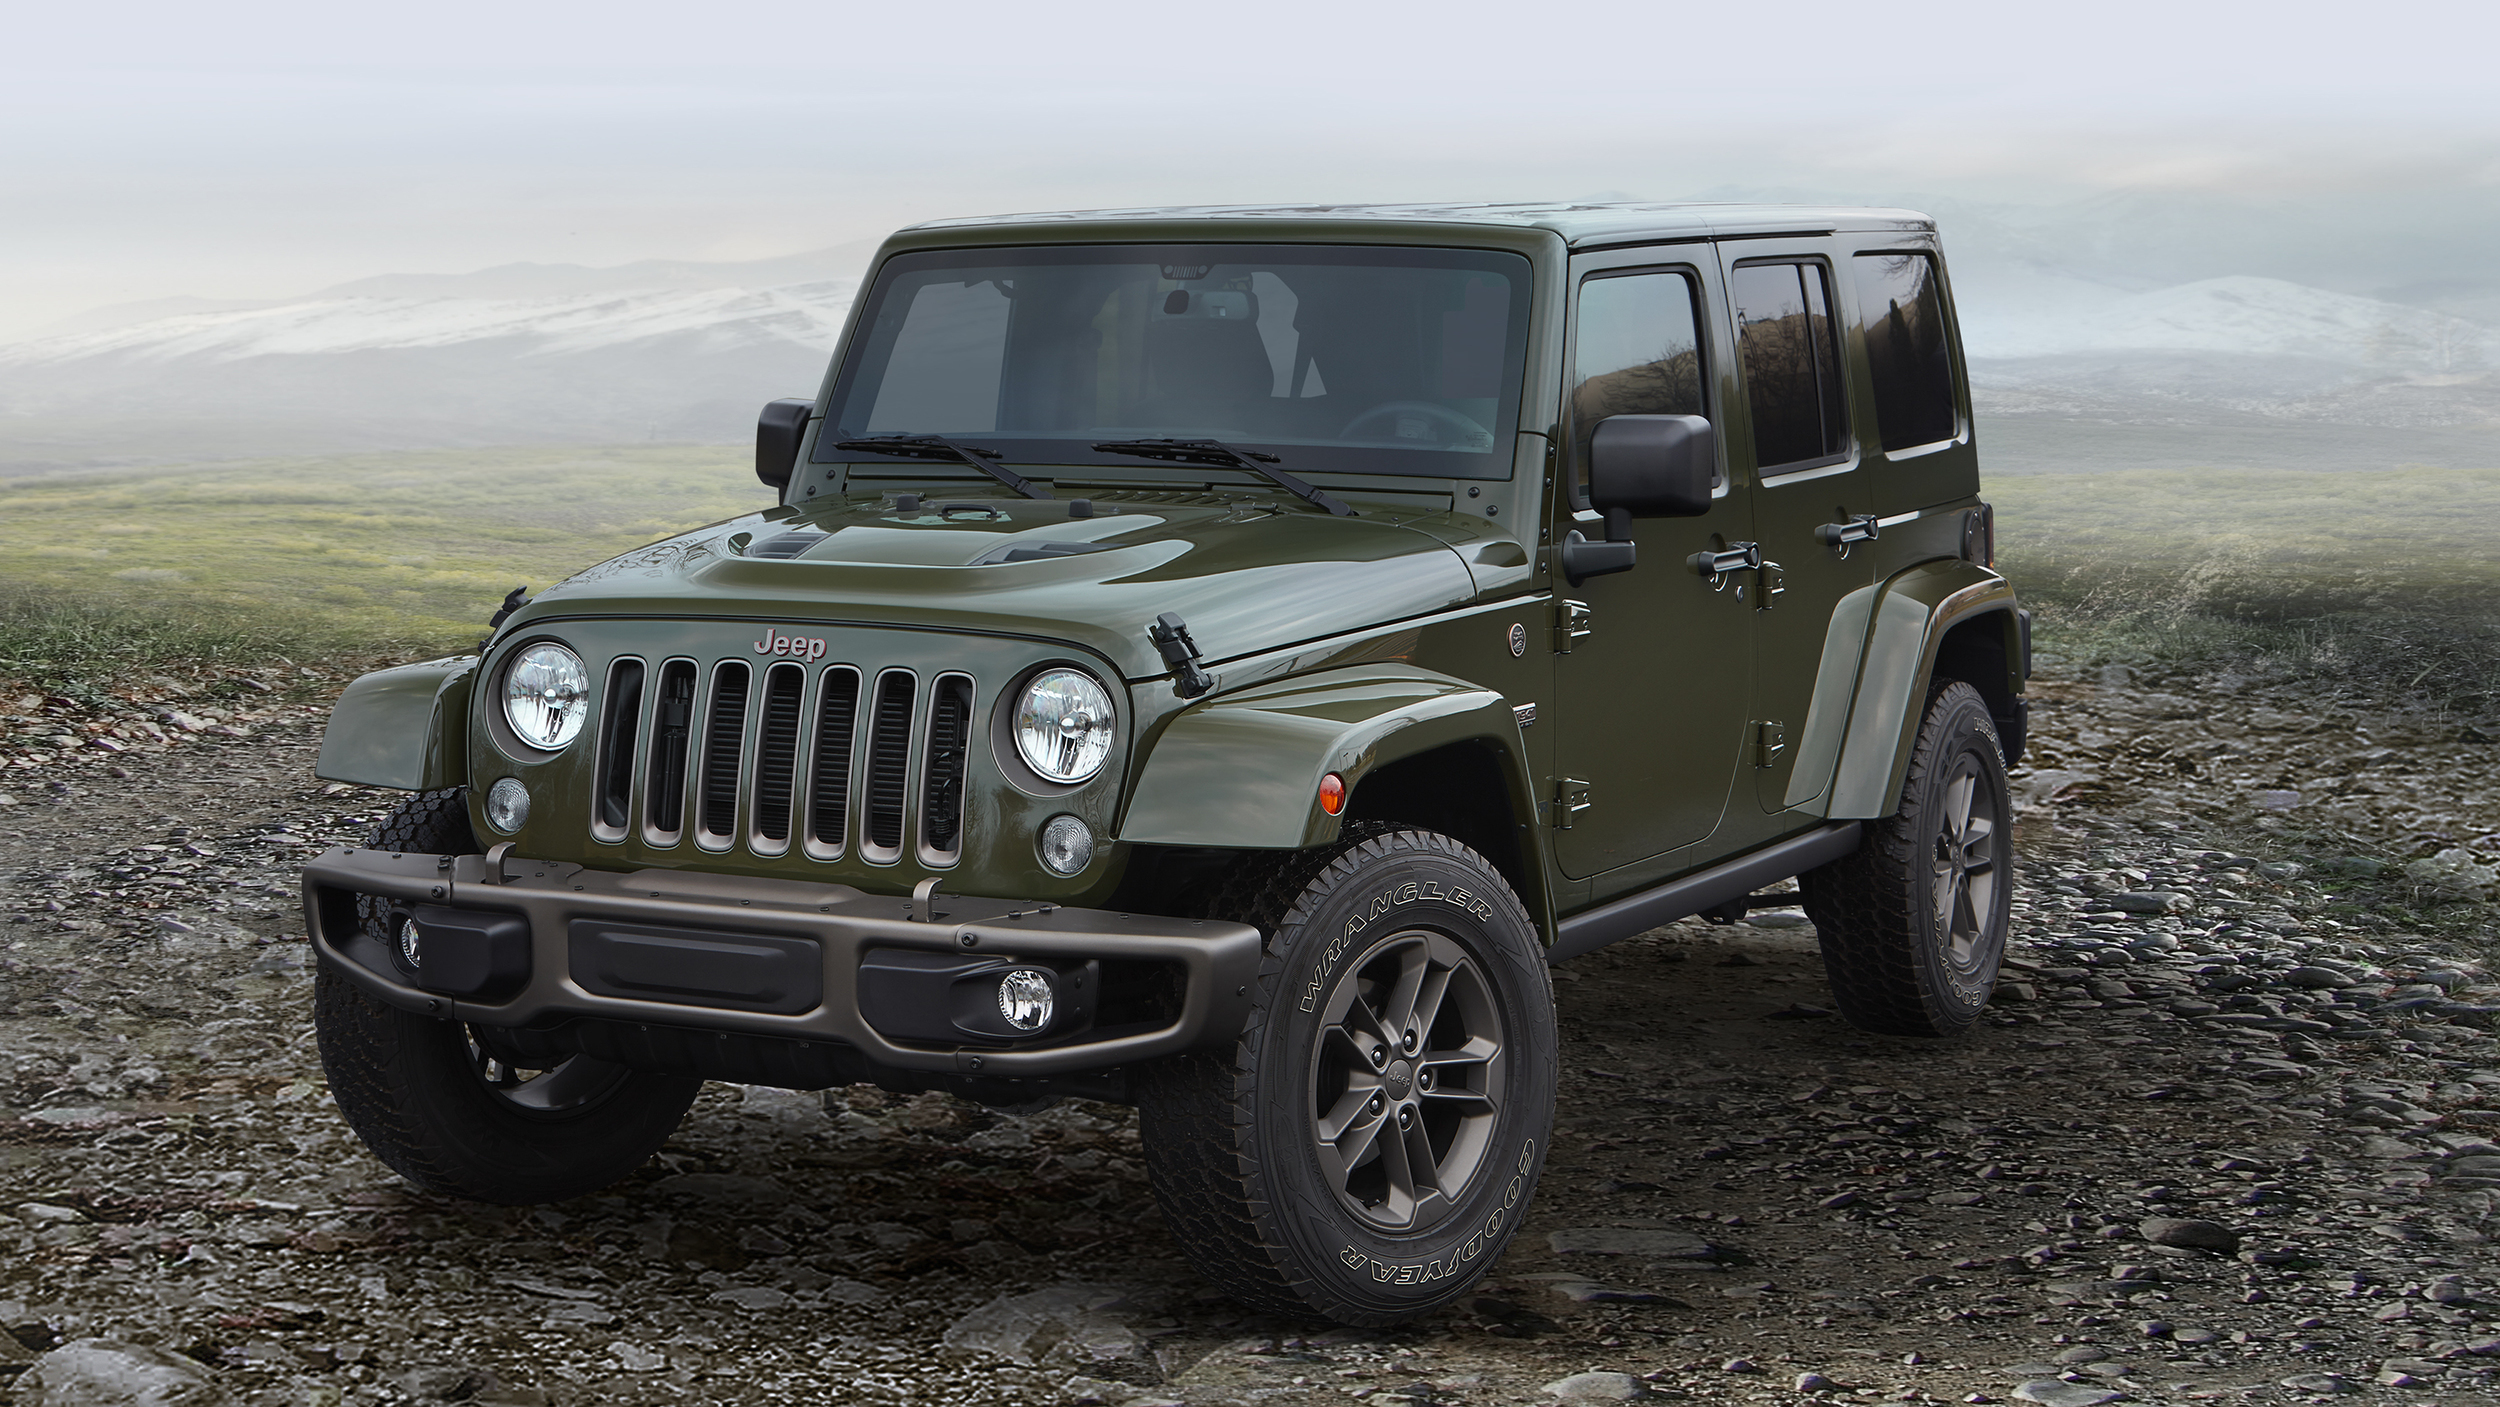 All of the changes we expect on the 2018 jeep wrangler jl